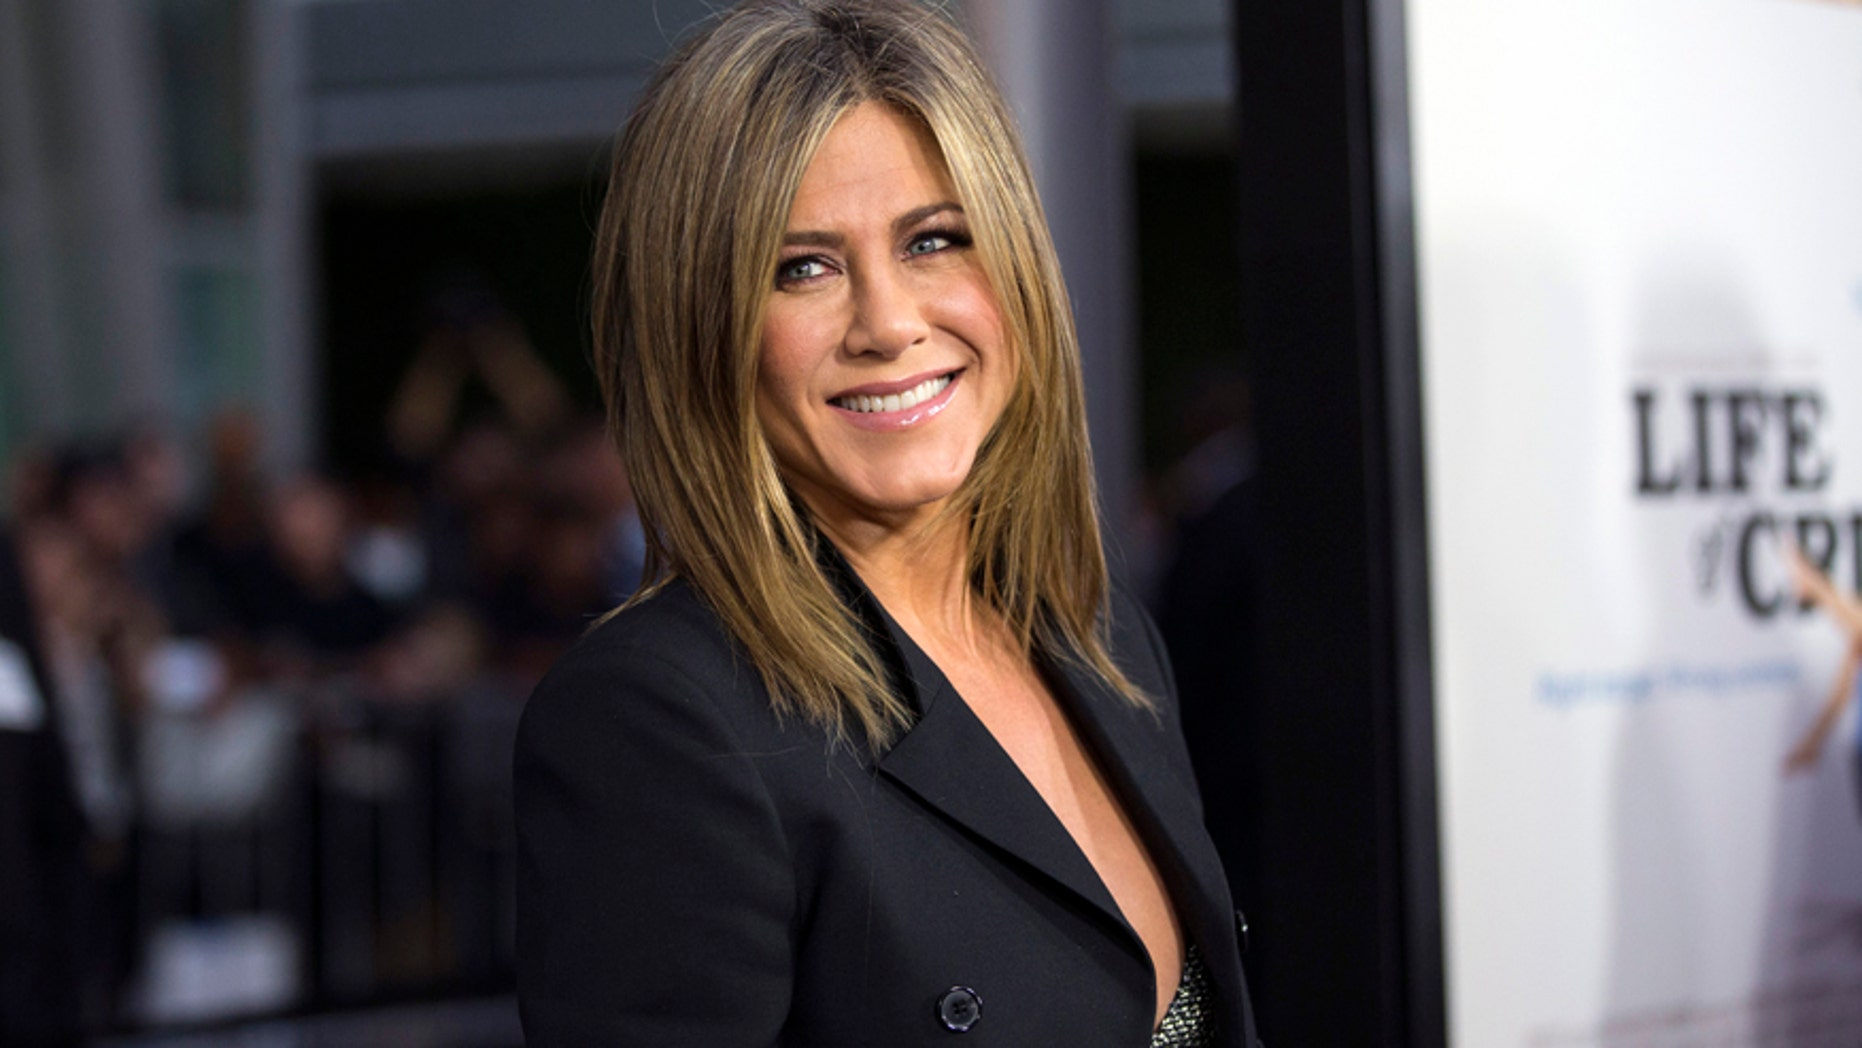 """Cast member Jennifer Aniston poses at the premiere of """"Life of Crime"""" in Los Angeles, California August 27, 2014."""